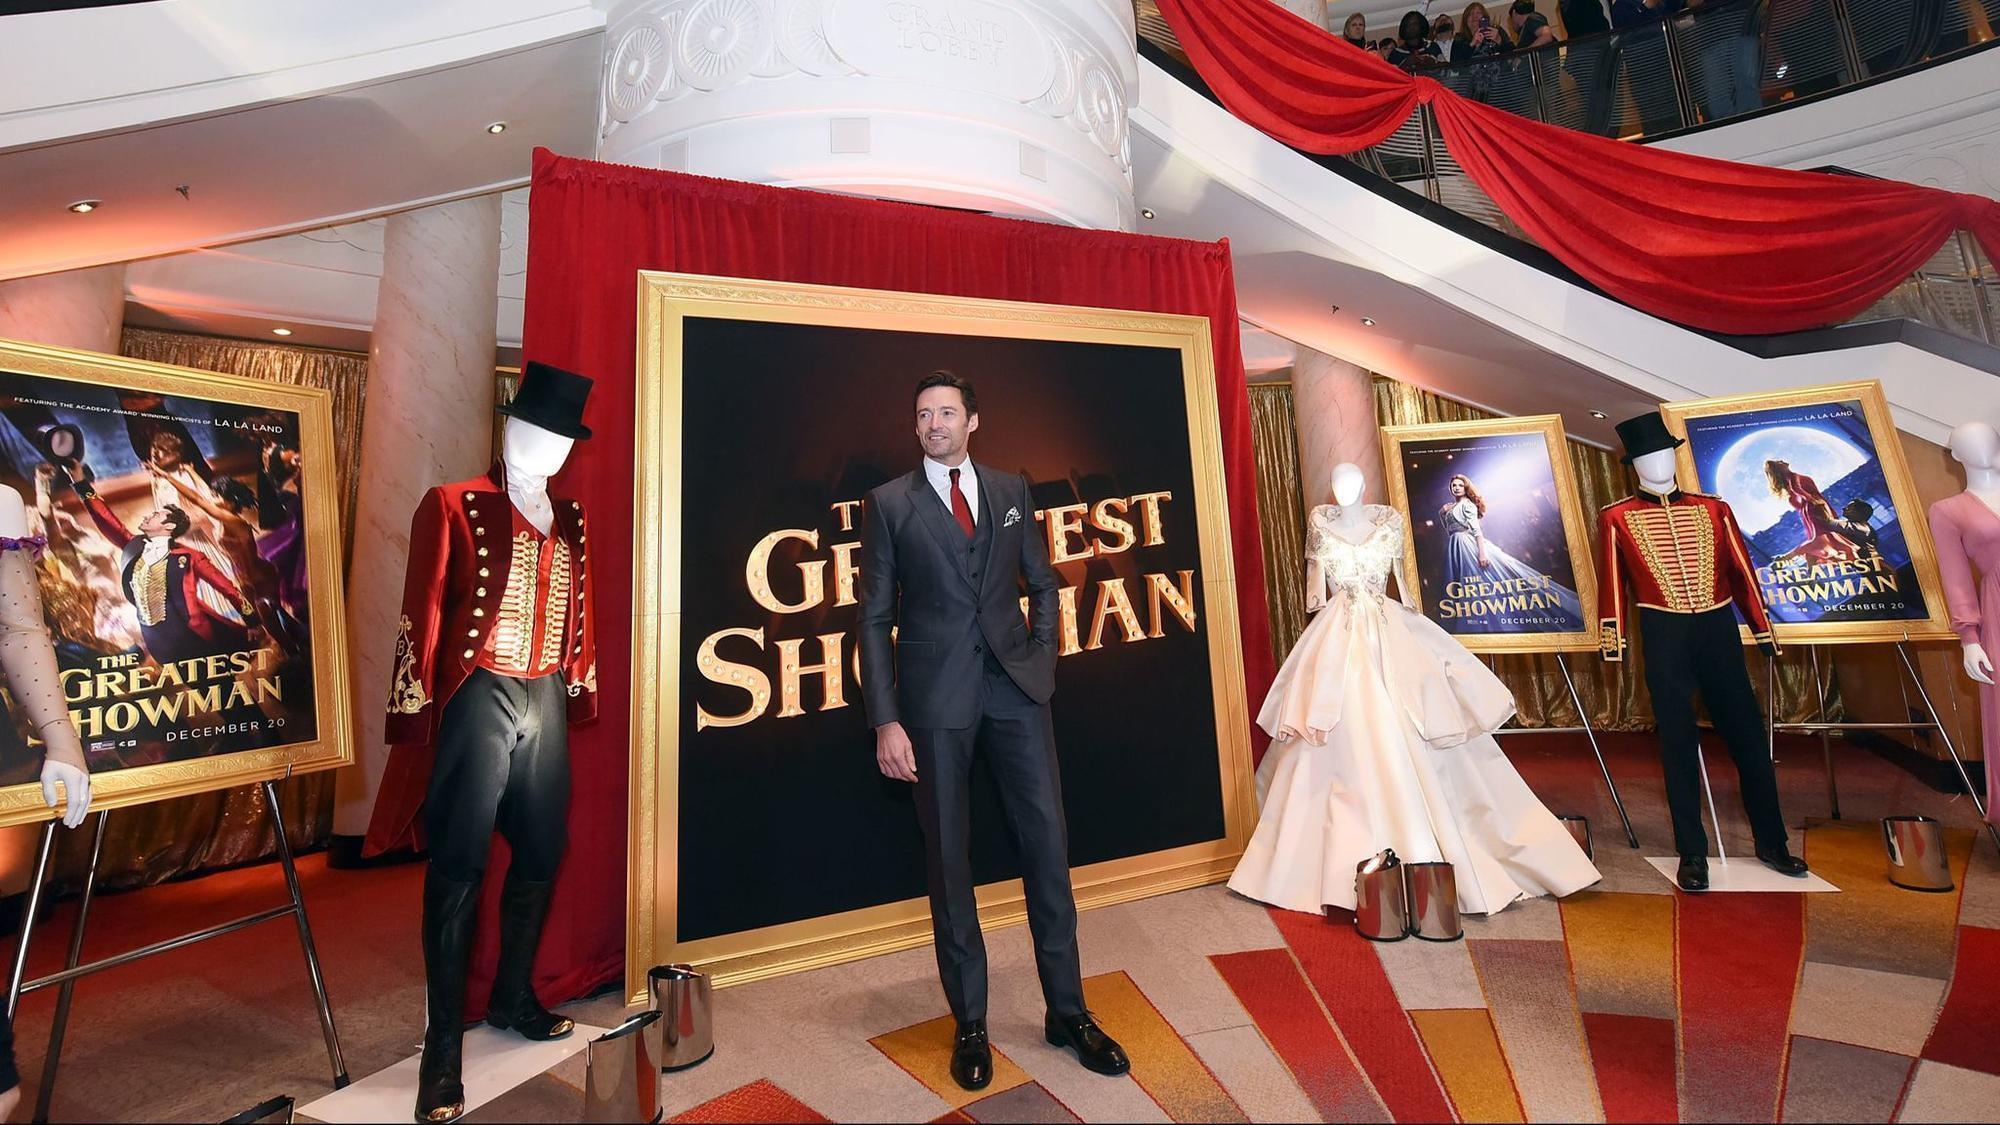 Queen Mary 2 Hosts Film Premiere Of Greatest Showman